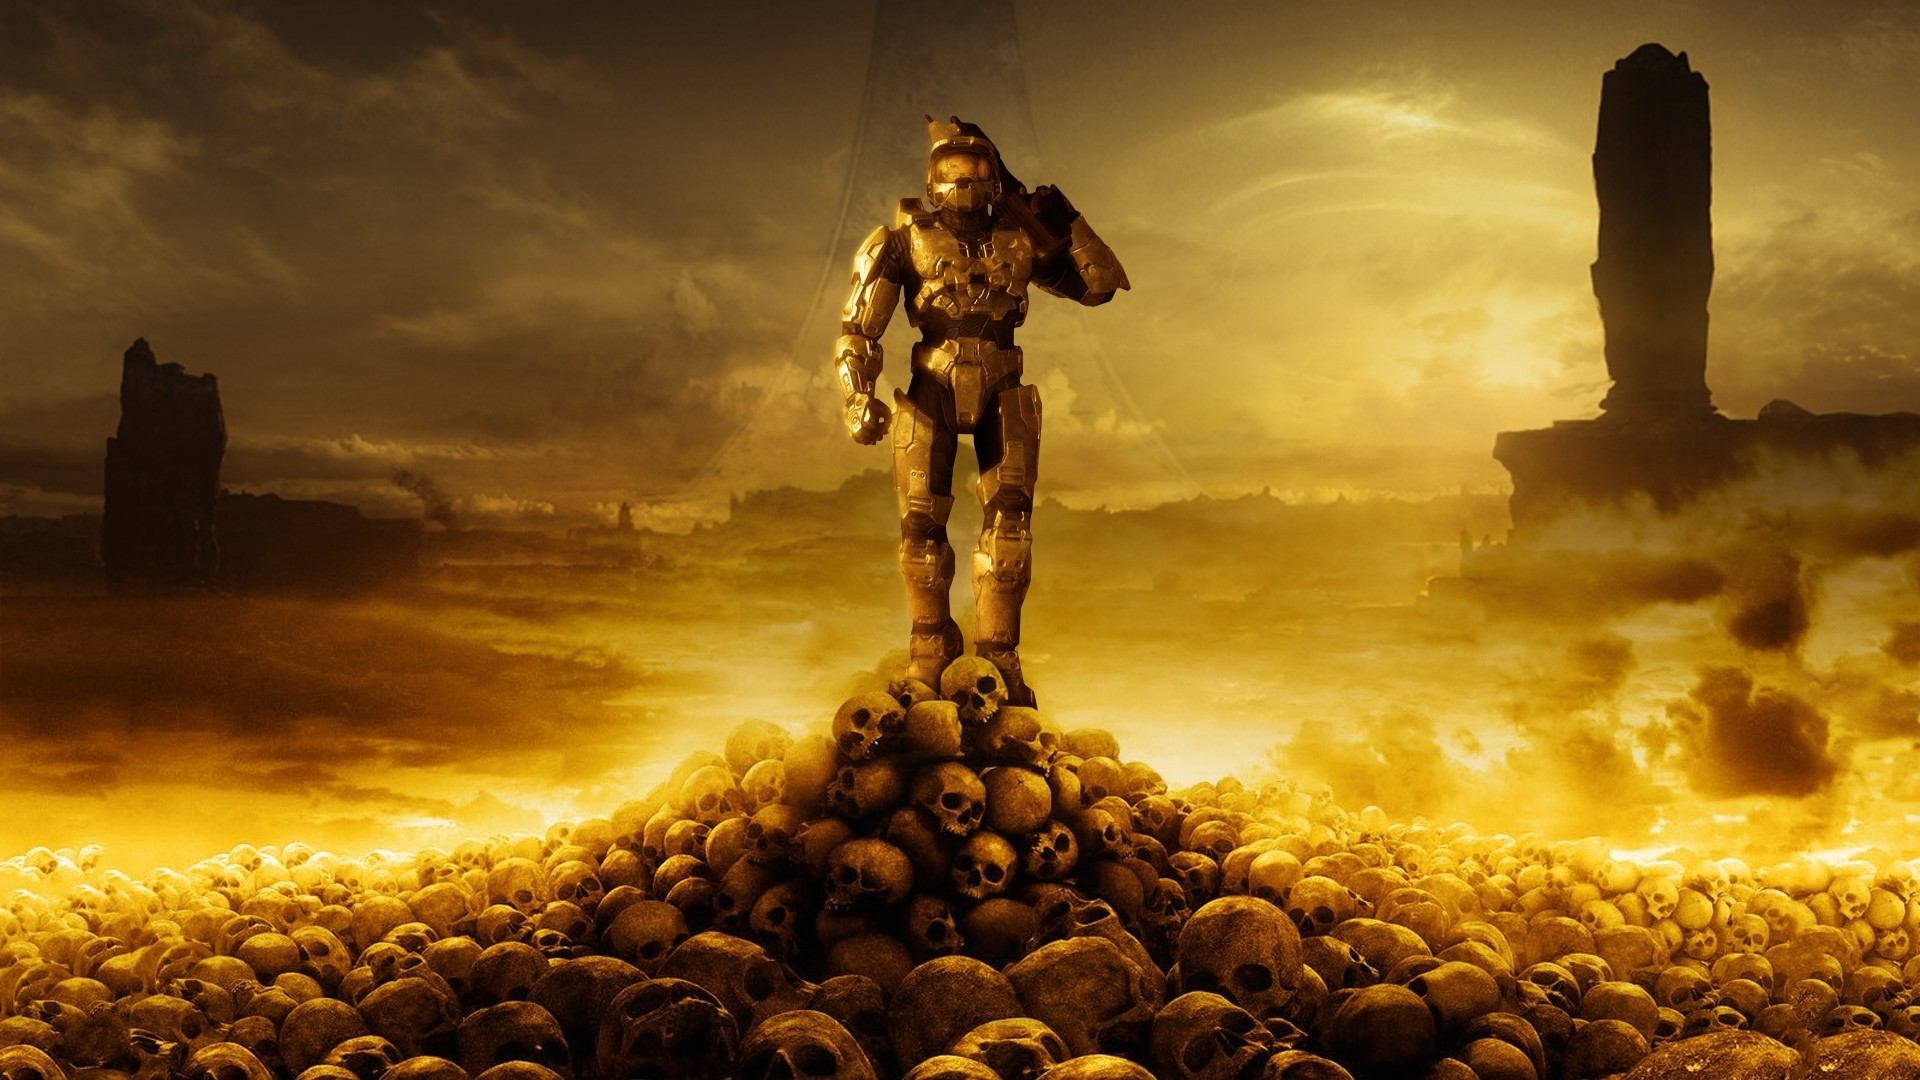 1920x1080 Halo, Master Chief, Halo 3, Skull, Video Games, Artwork Wallpapers HD /  Desktop and Mobile Backgrounds